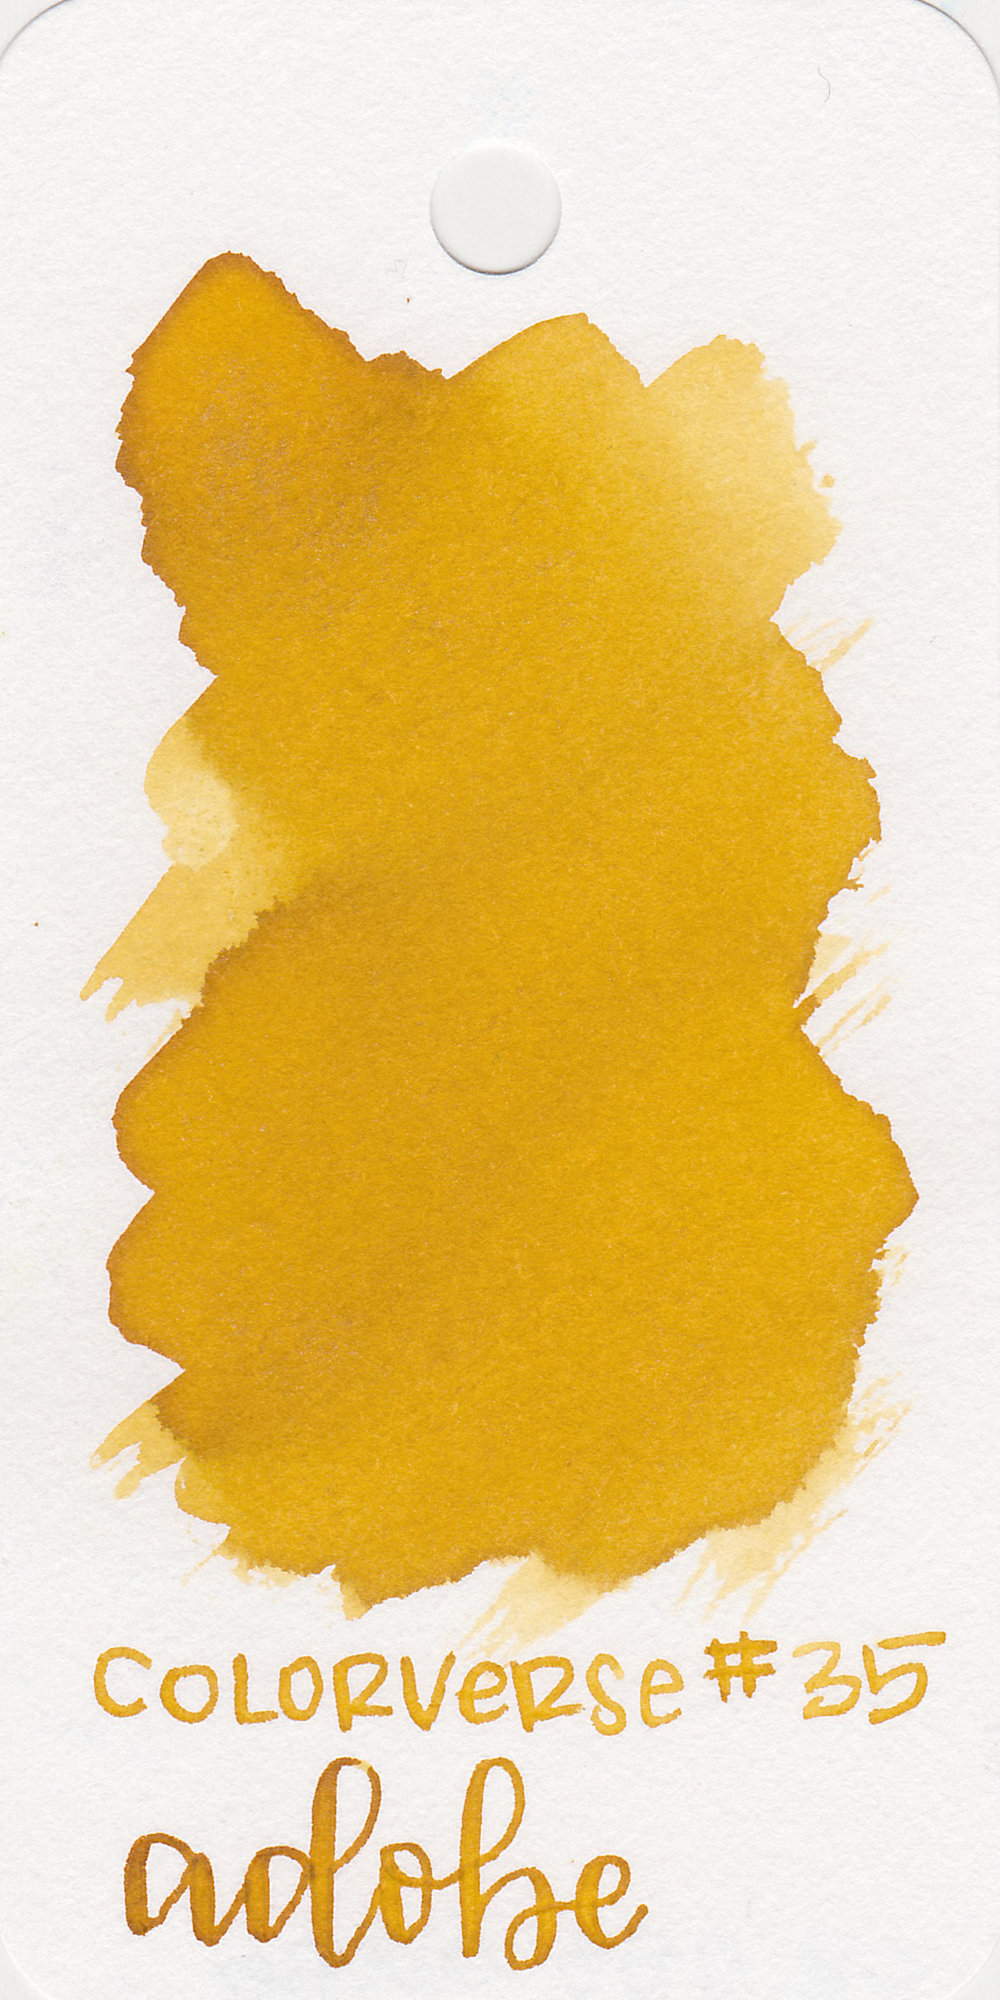 The color: - Adobe is a really interesting dark yellow, almost a mustard yellow but not quite.